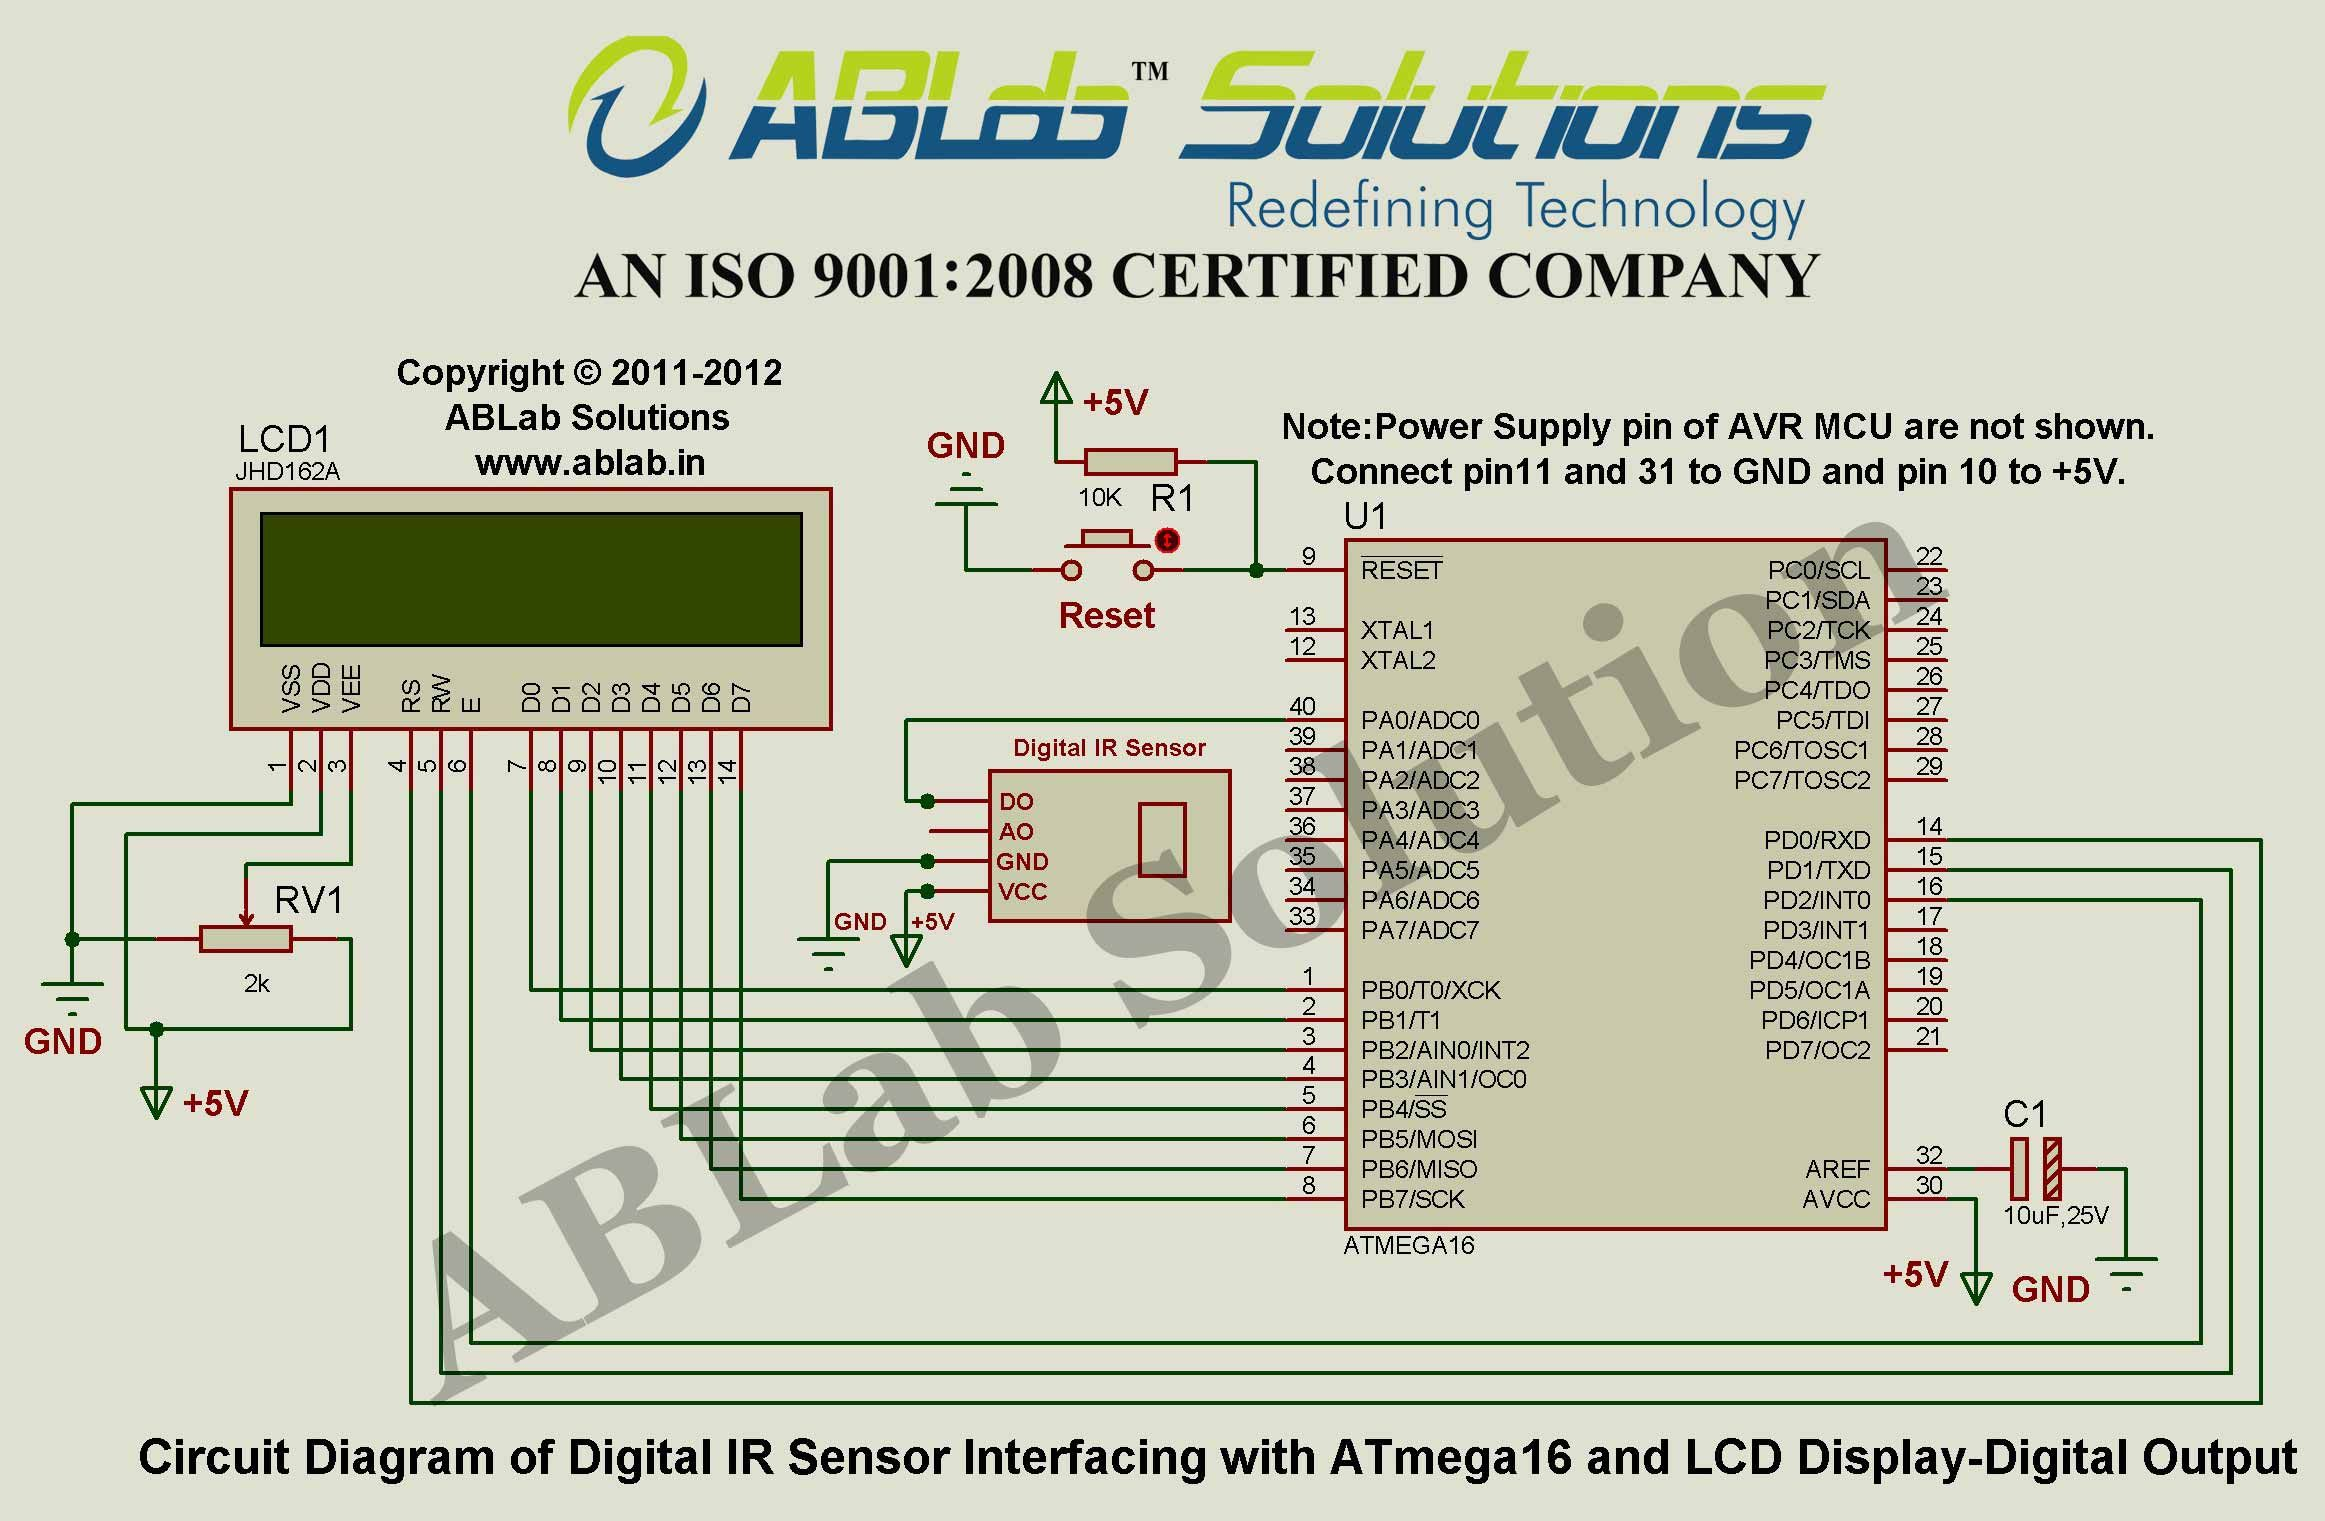 hight resolution of digital ir sensor interfacing with avr atmega16 microcontroller and lcd display digital output circuit diagram ablab solutions